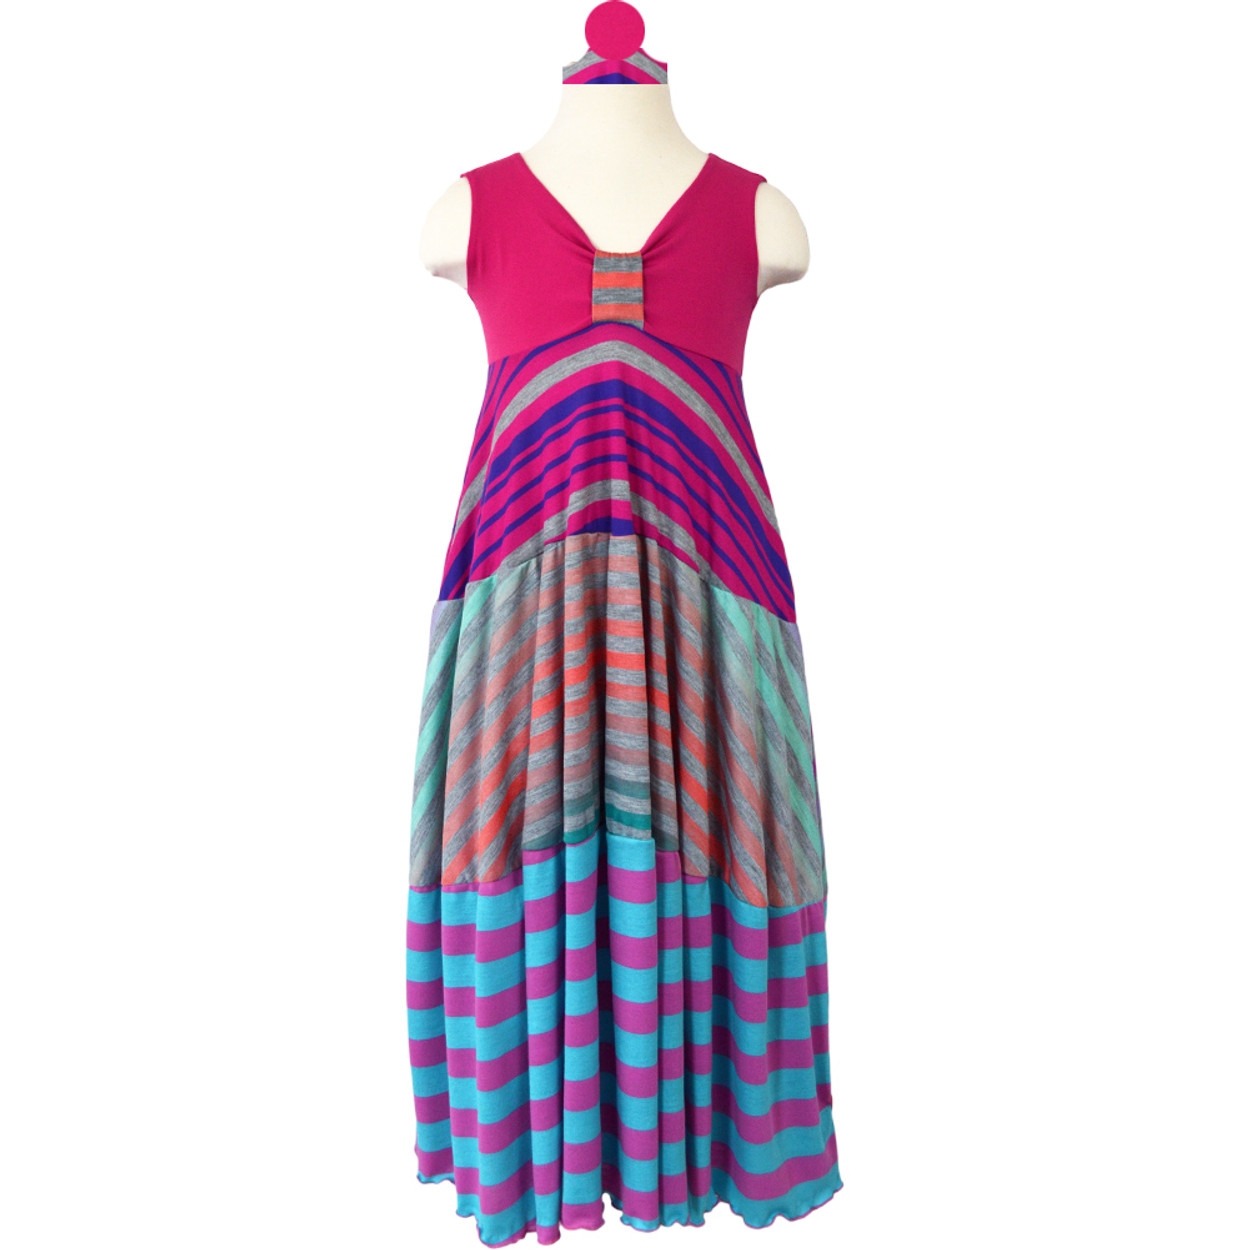 66faaba9b4 Twirly Girl Maxi Dresses for Kids Girls 70 s Style Cool Stripes Swirly  Colorful